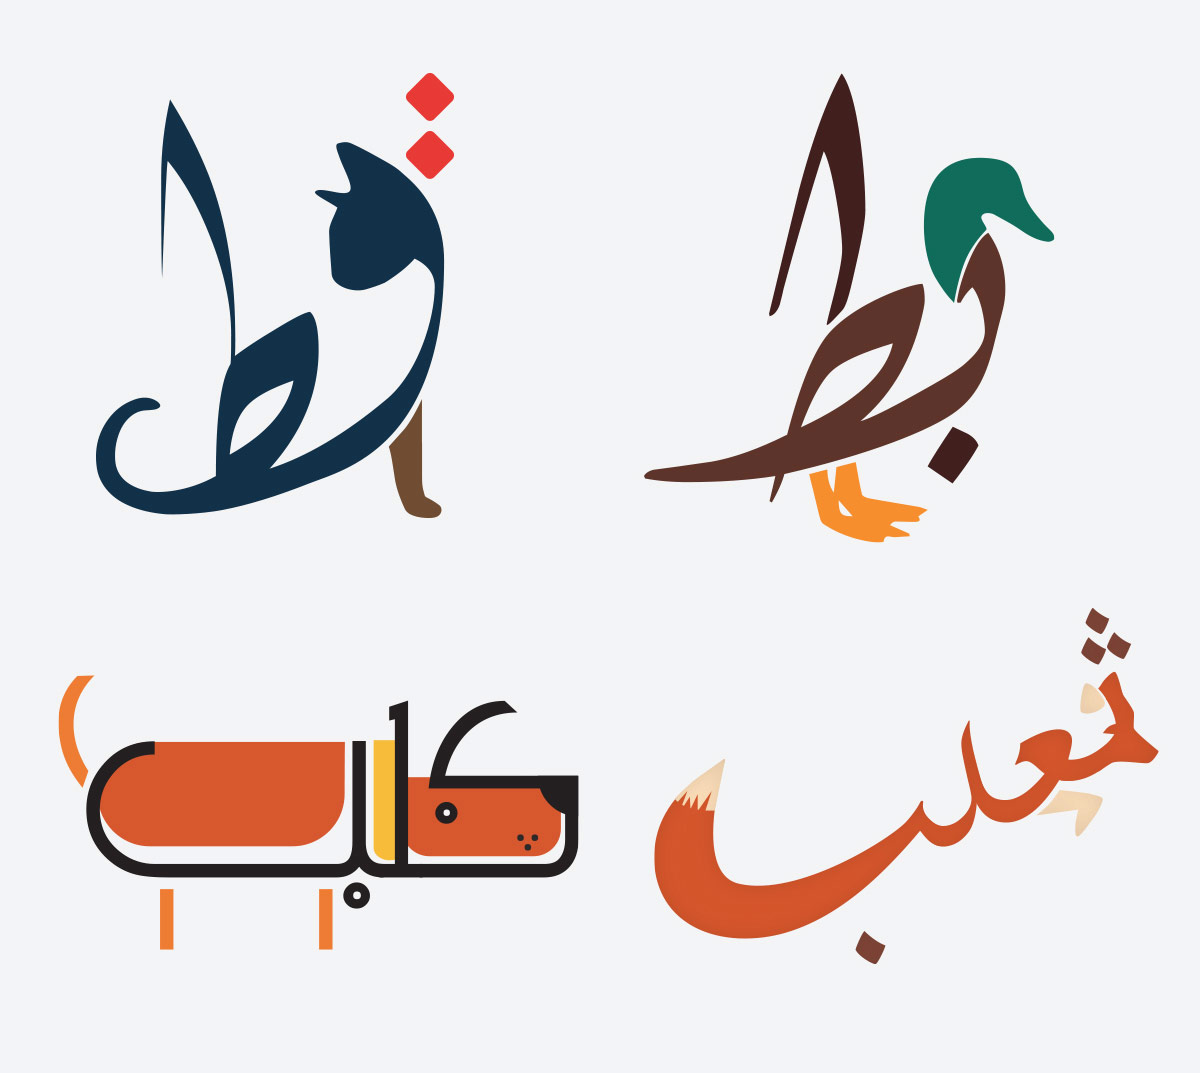 Arabic Words Illustrated to Match Their Literal Meaning by Mahmoud Tammam (10 pics)